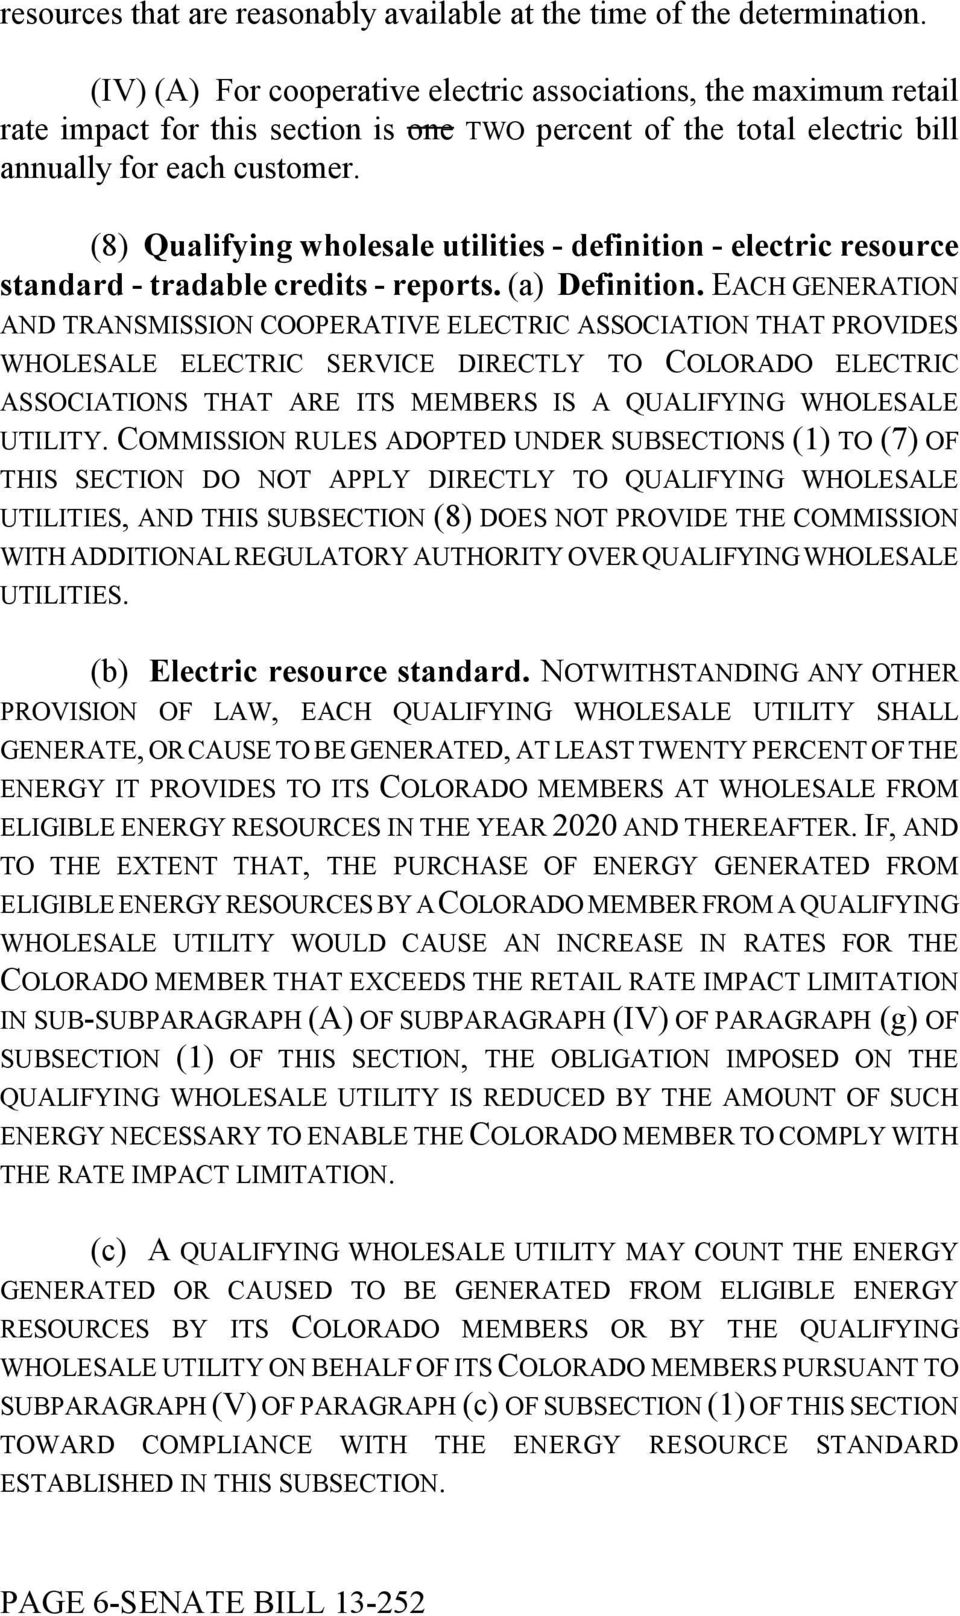 (8) Qualifying wholesale utilities - definition - electric resource standard - tradable credits - reports. (a) Definition.